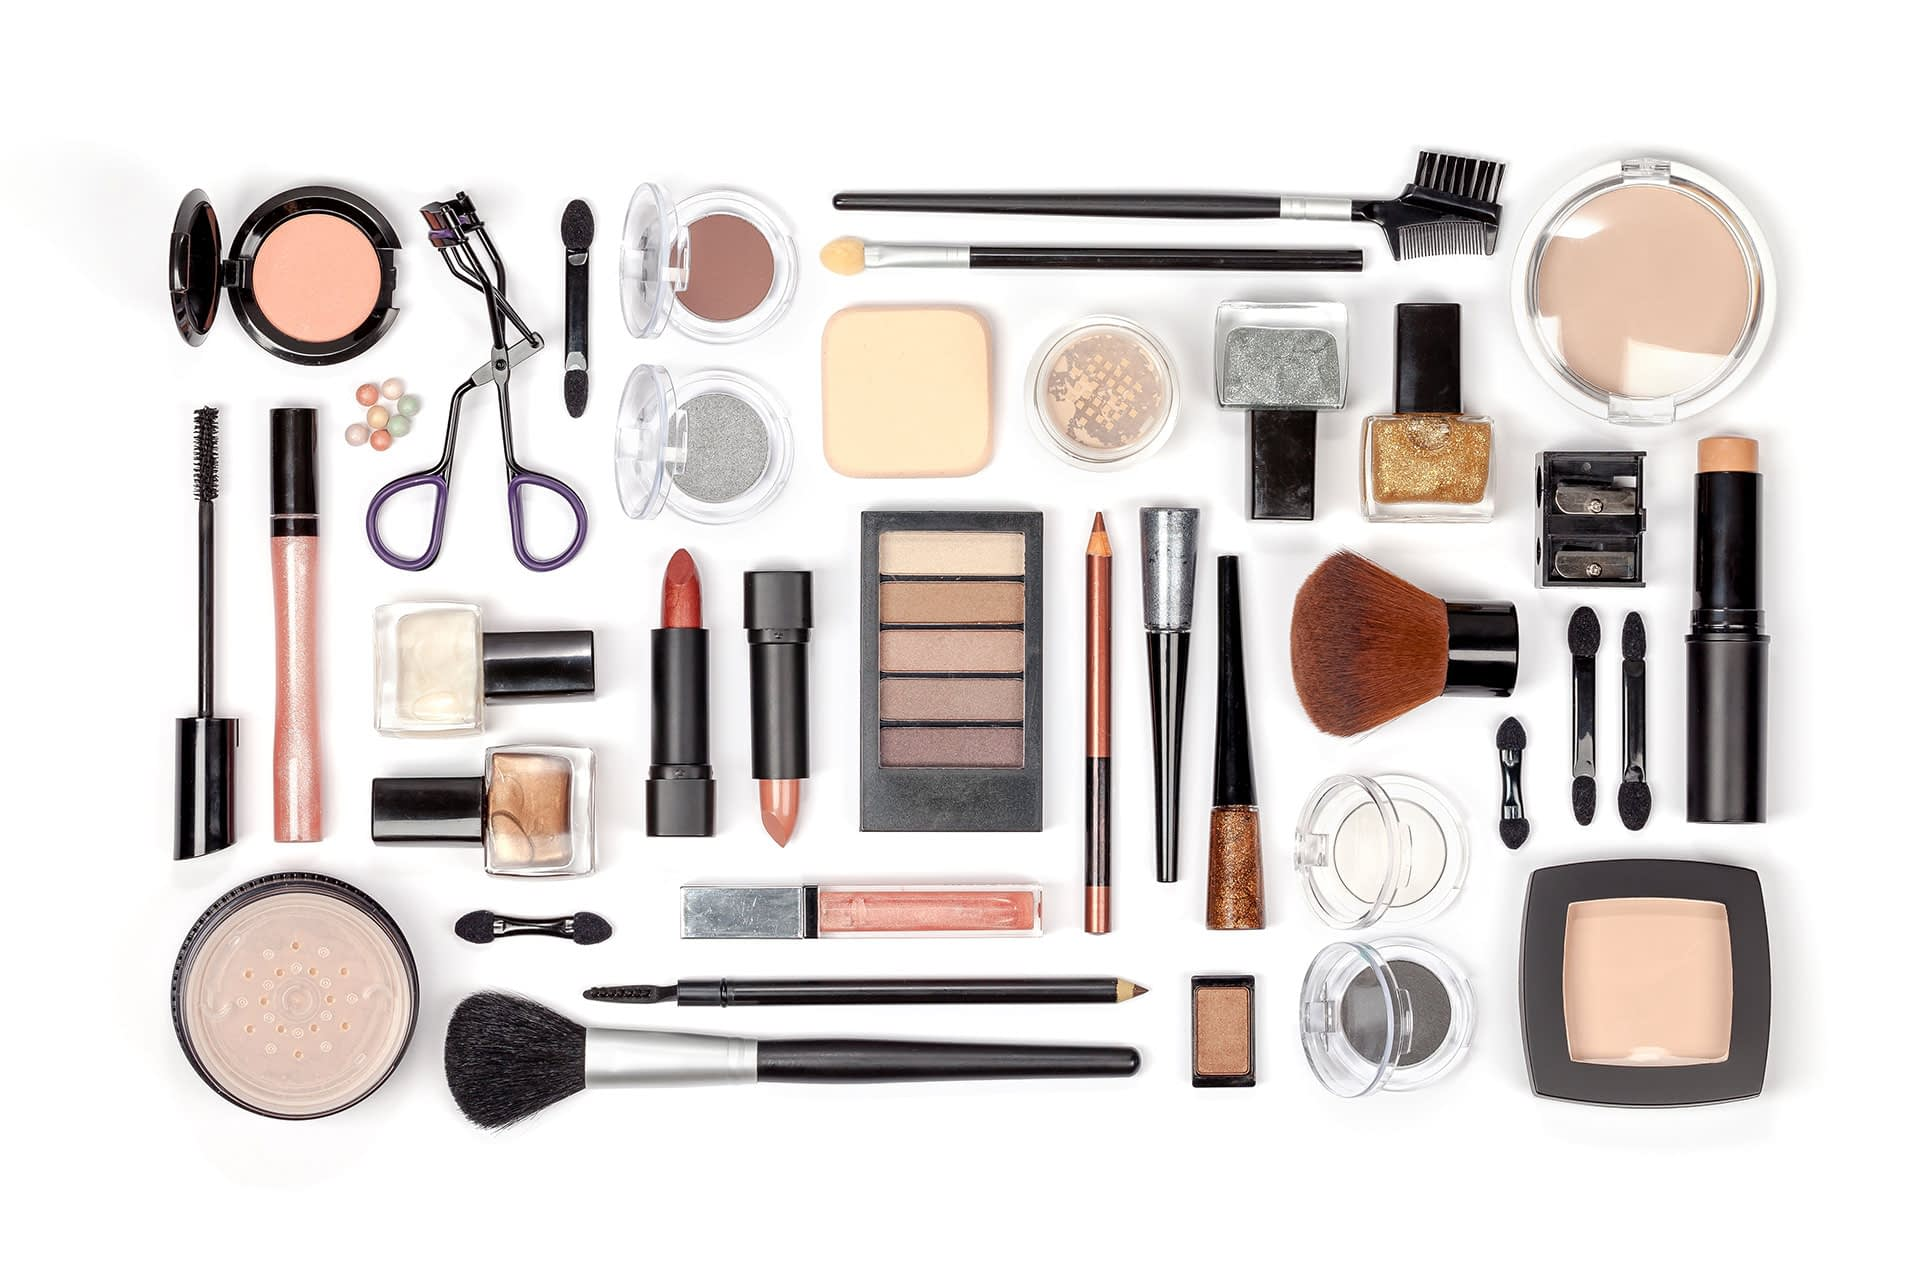 spread of different healthy makeup brands and tools